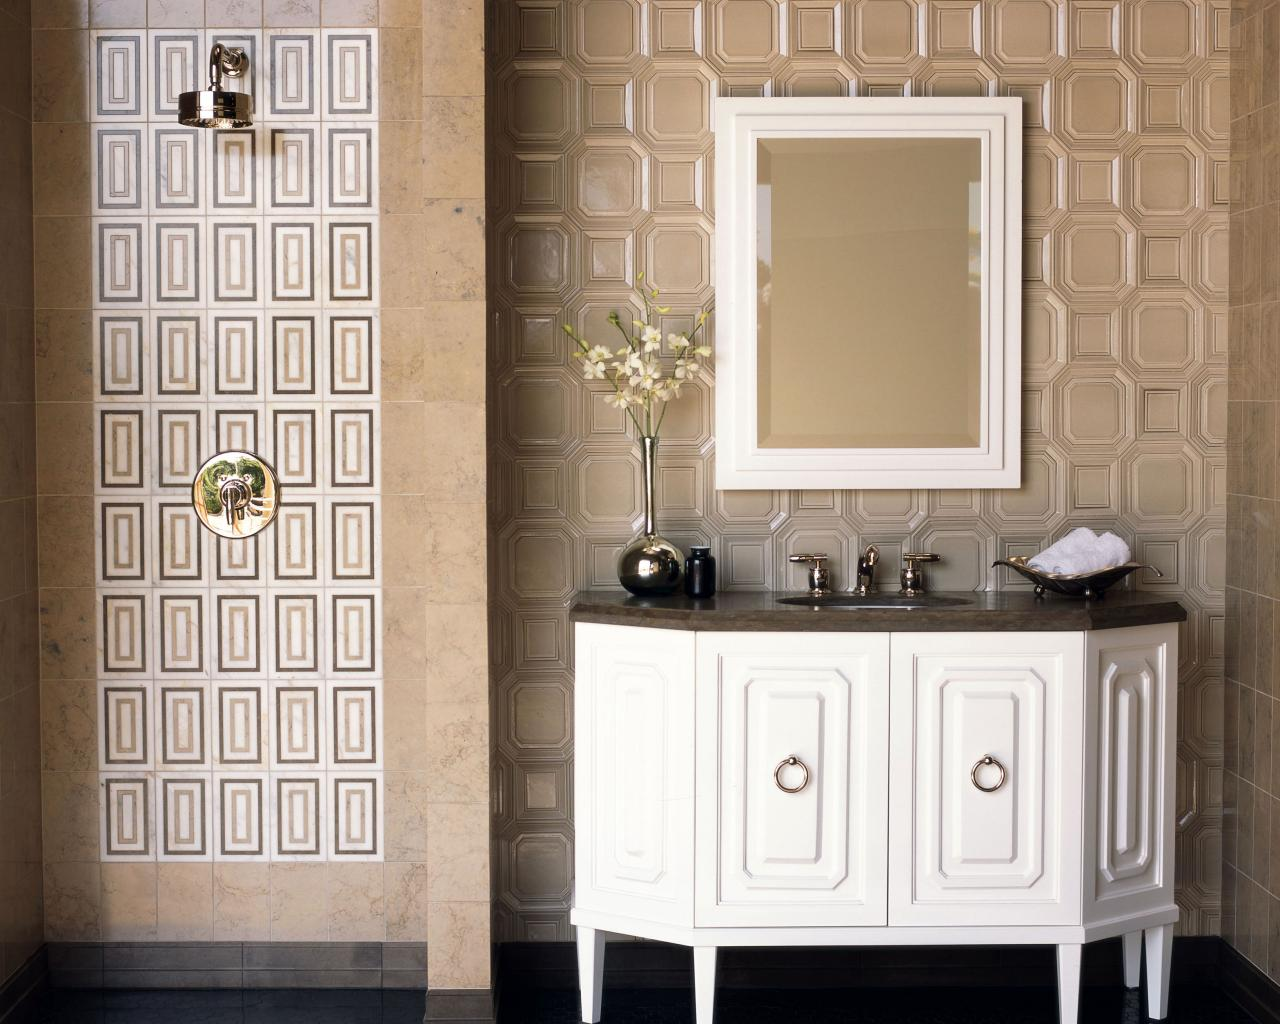 CI-Walker-Zanger_bathroom-wall-tile-white-graphic_h.jpg.rend.hgtvcom.1280.1024